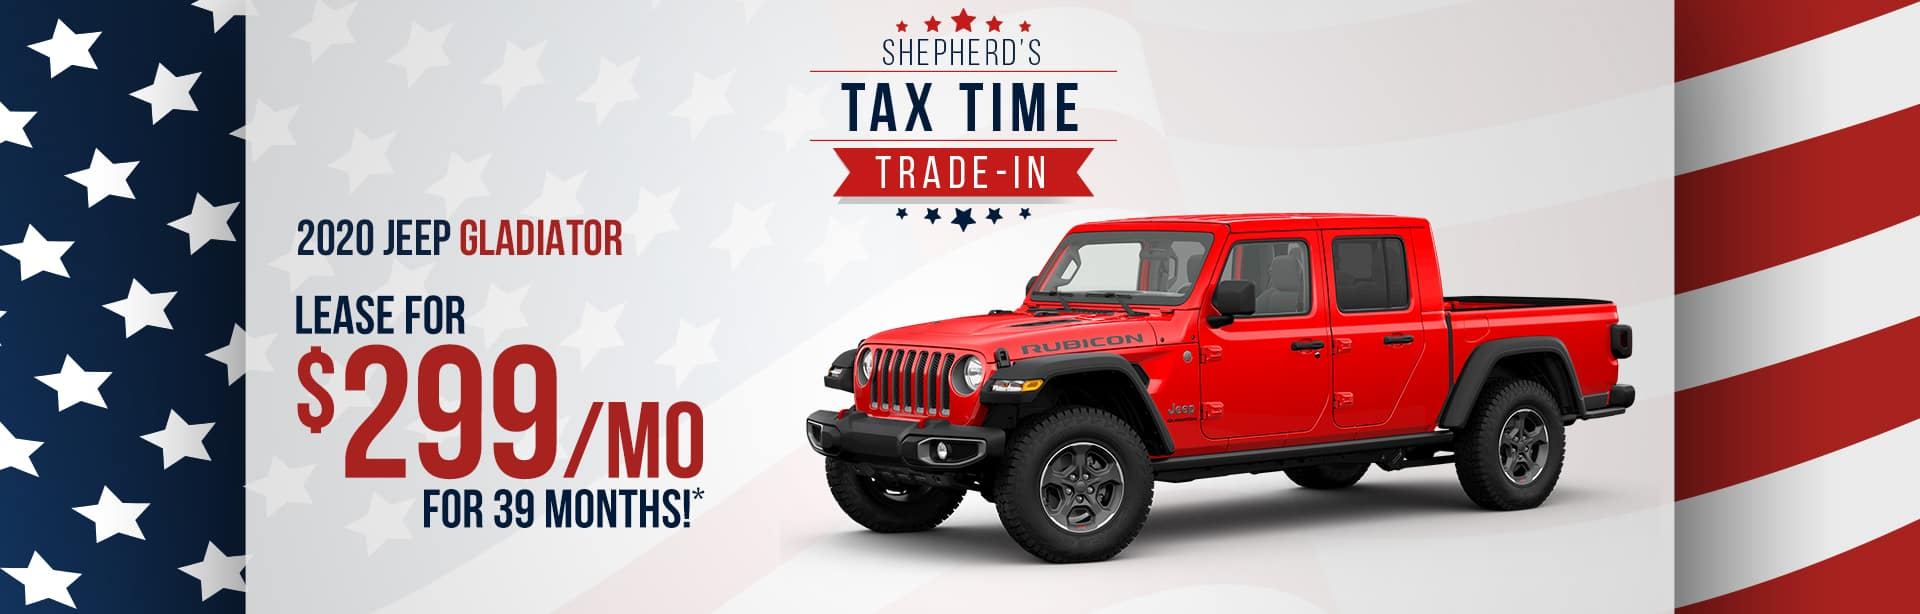 Lease a Jeep Gladiator for $299 a month near Kendallville, Indiana